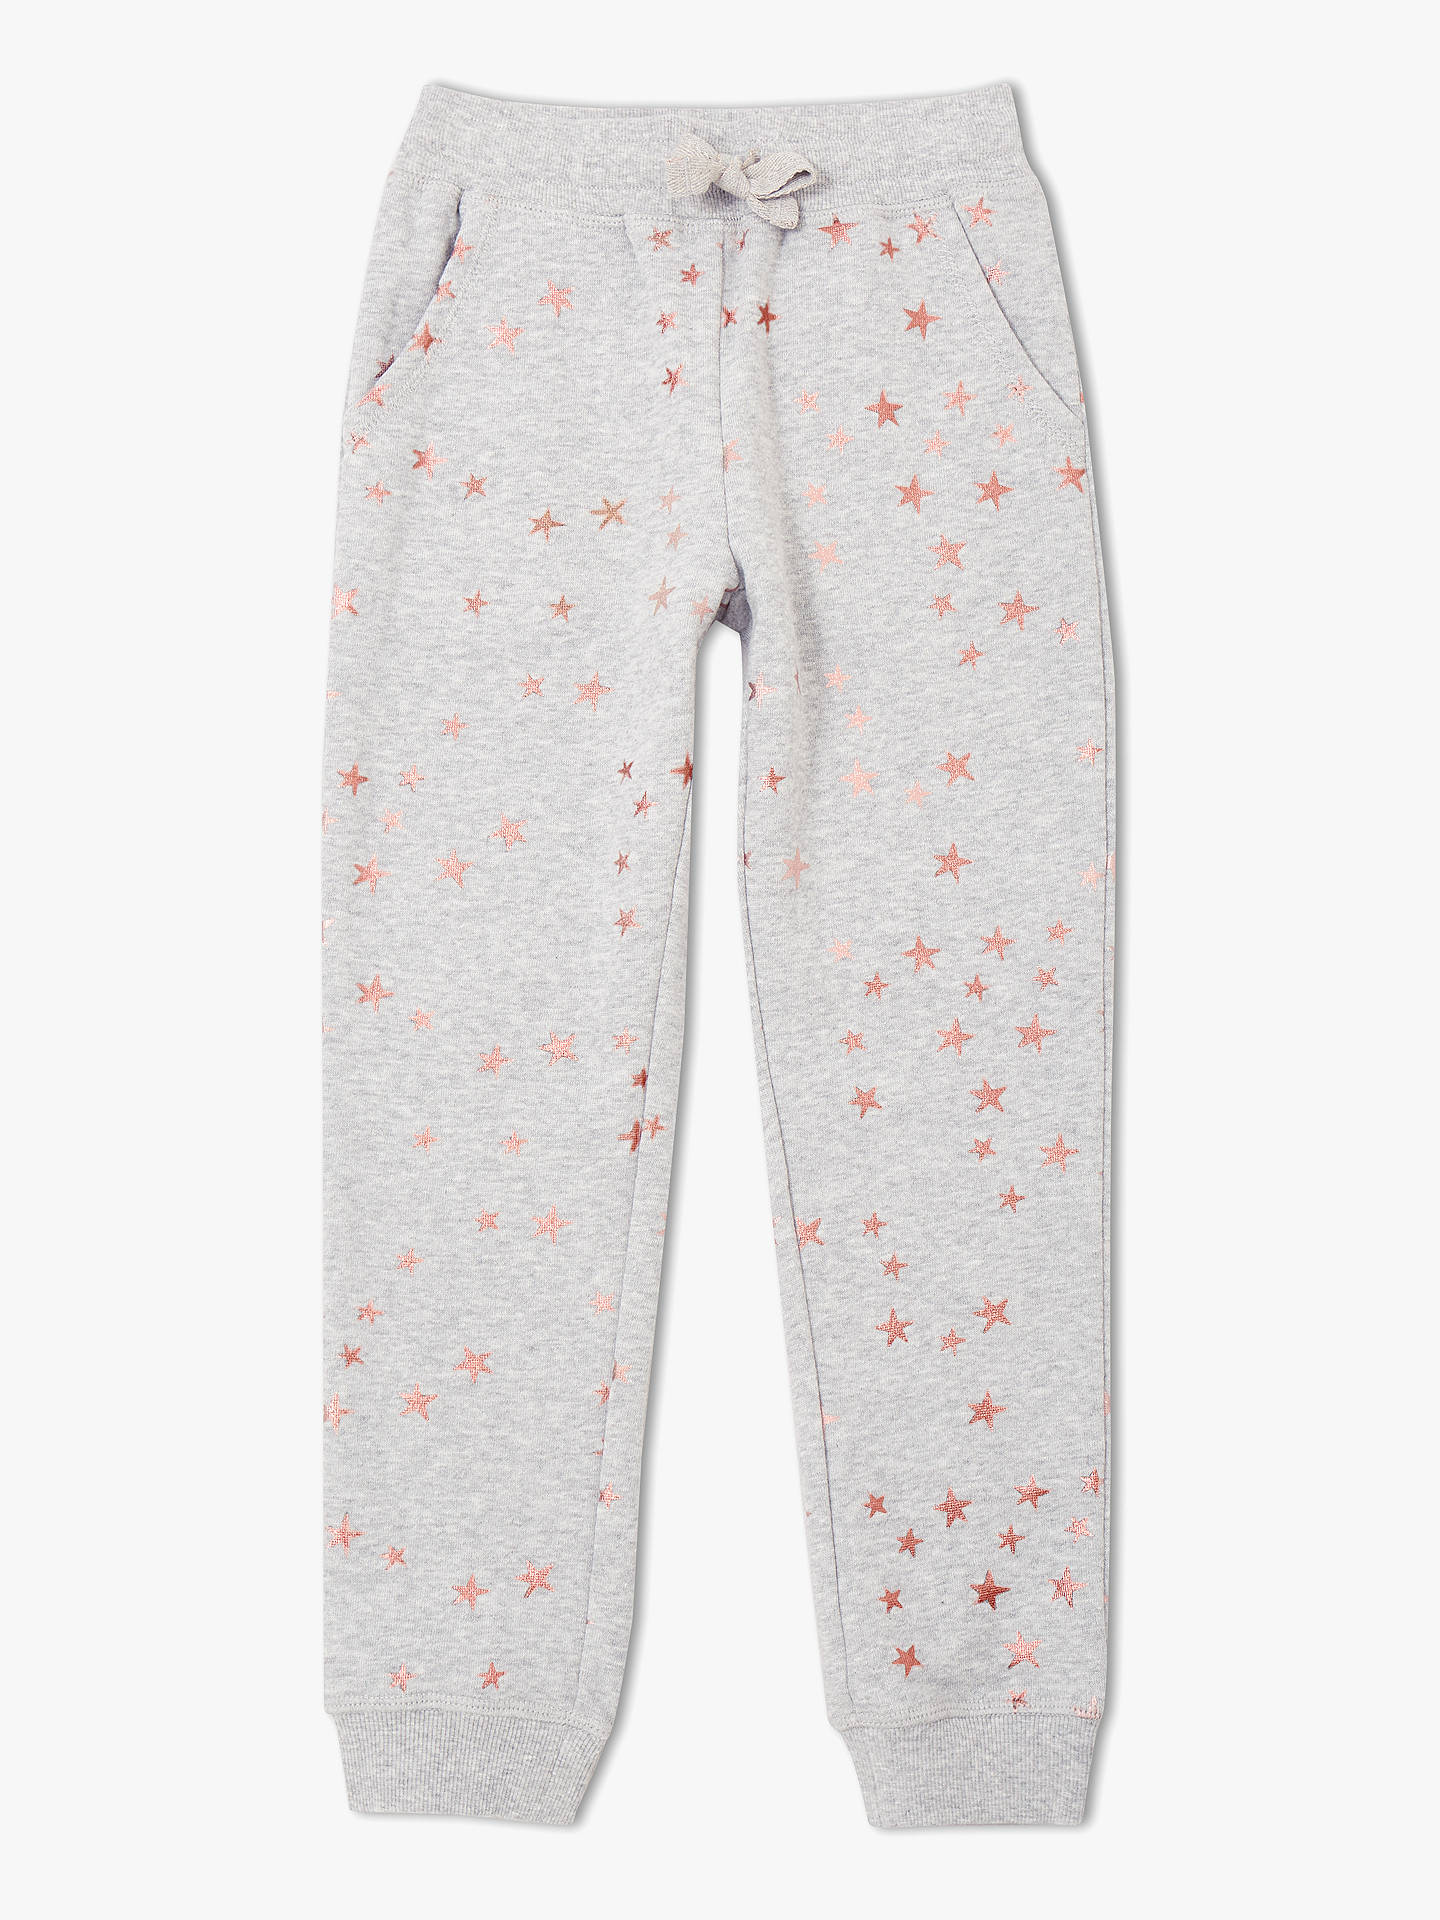 Buy John Lewis & Partners Girls' Star Print Joggers, Grey, 2 years Online at johnlewis.com